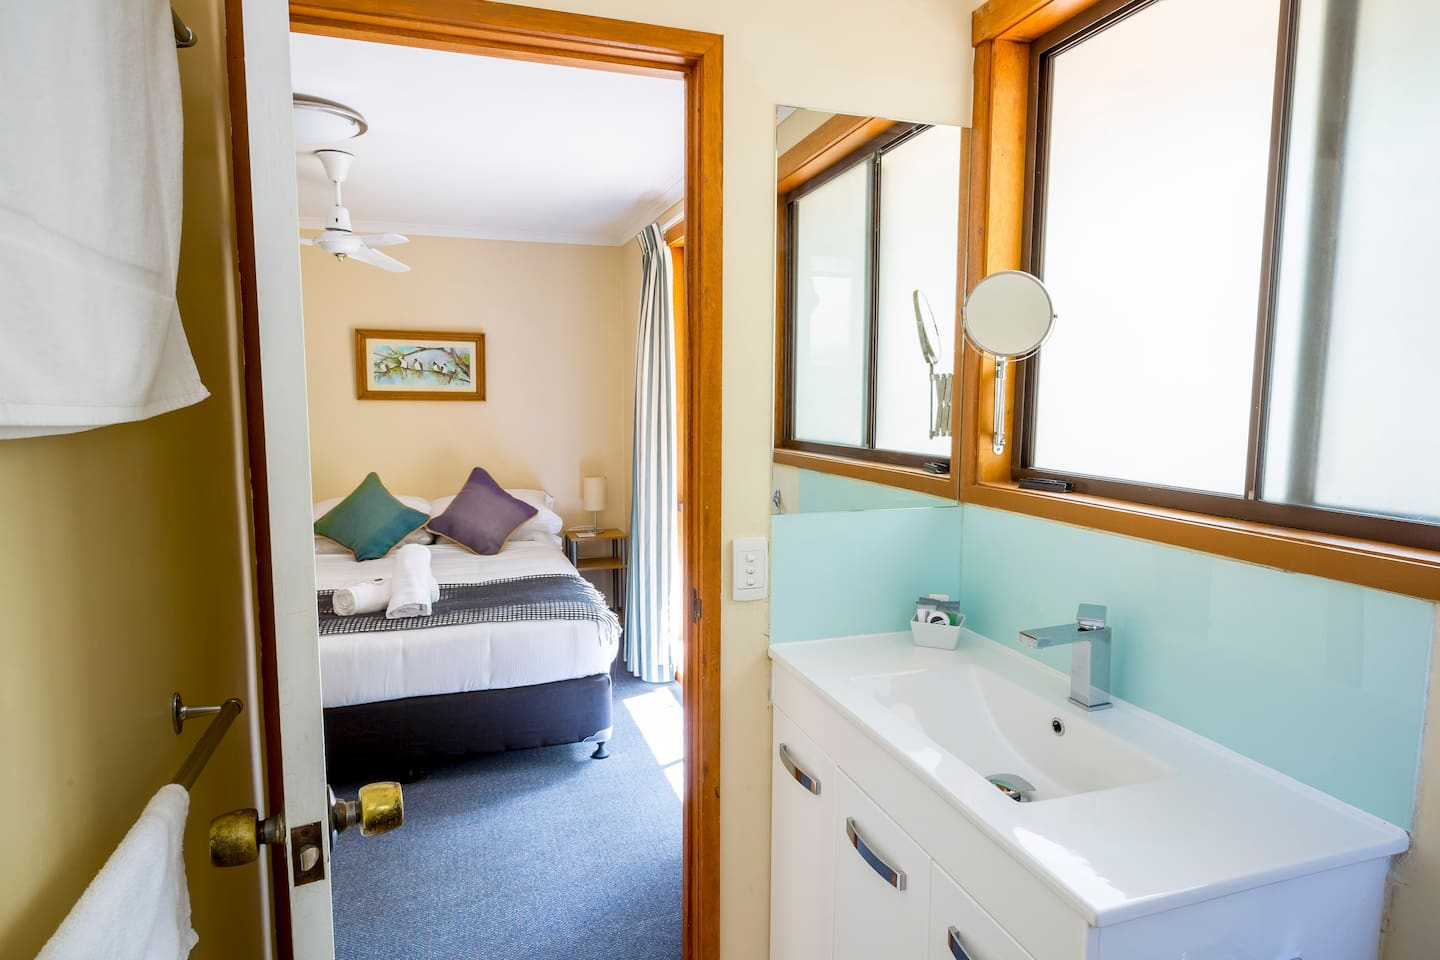 Beddroom 1 with ensuite